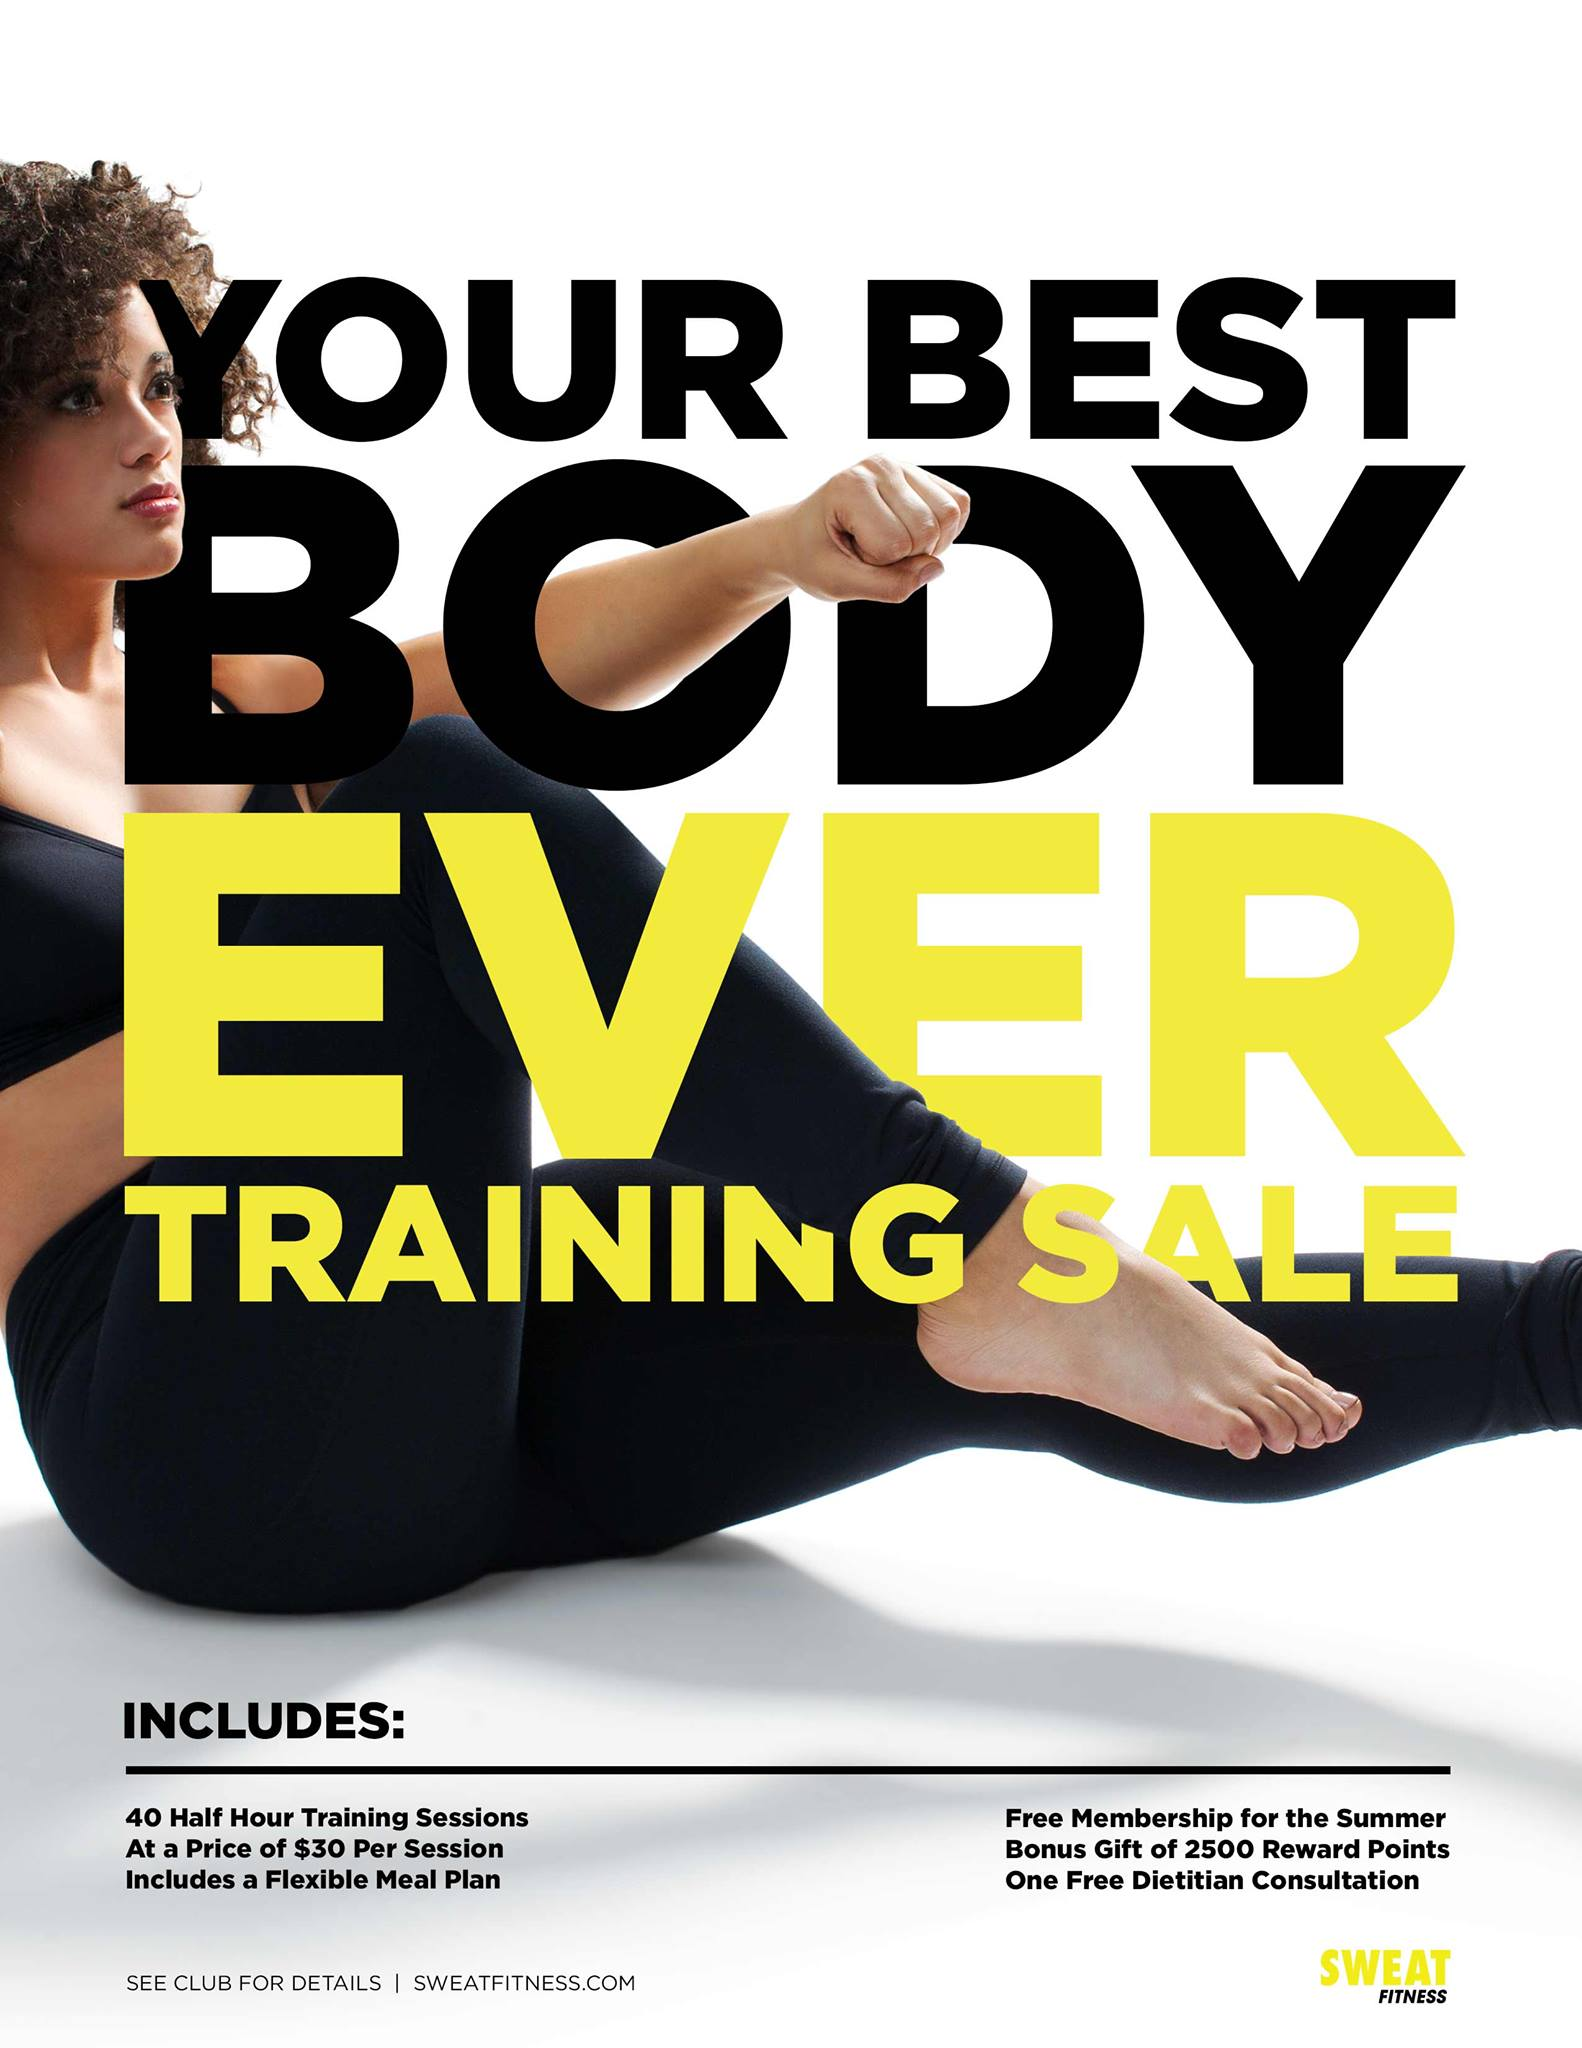 Personal Training Promotion Image